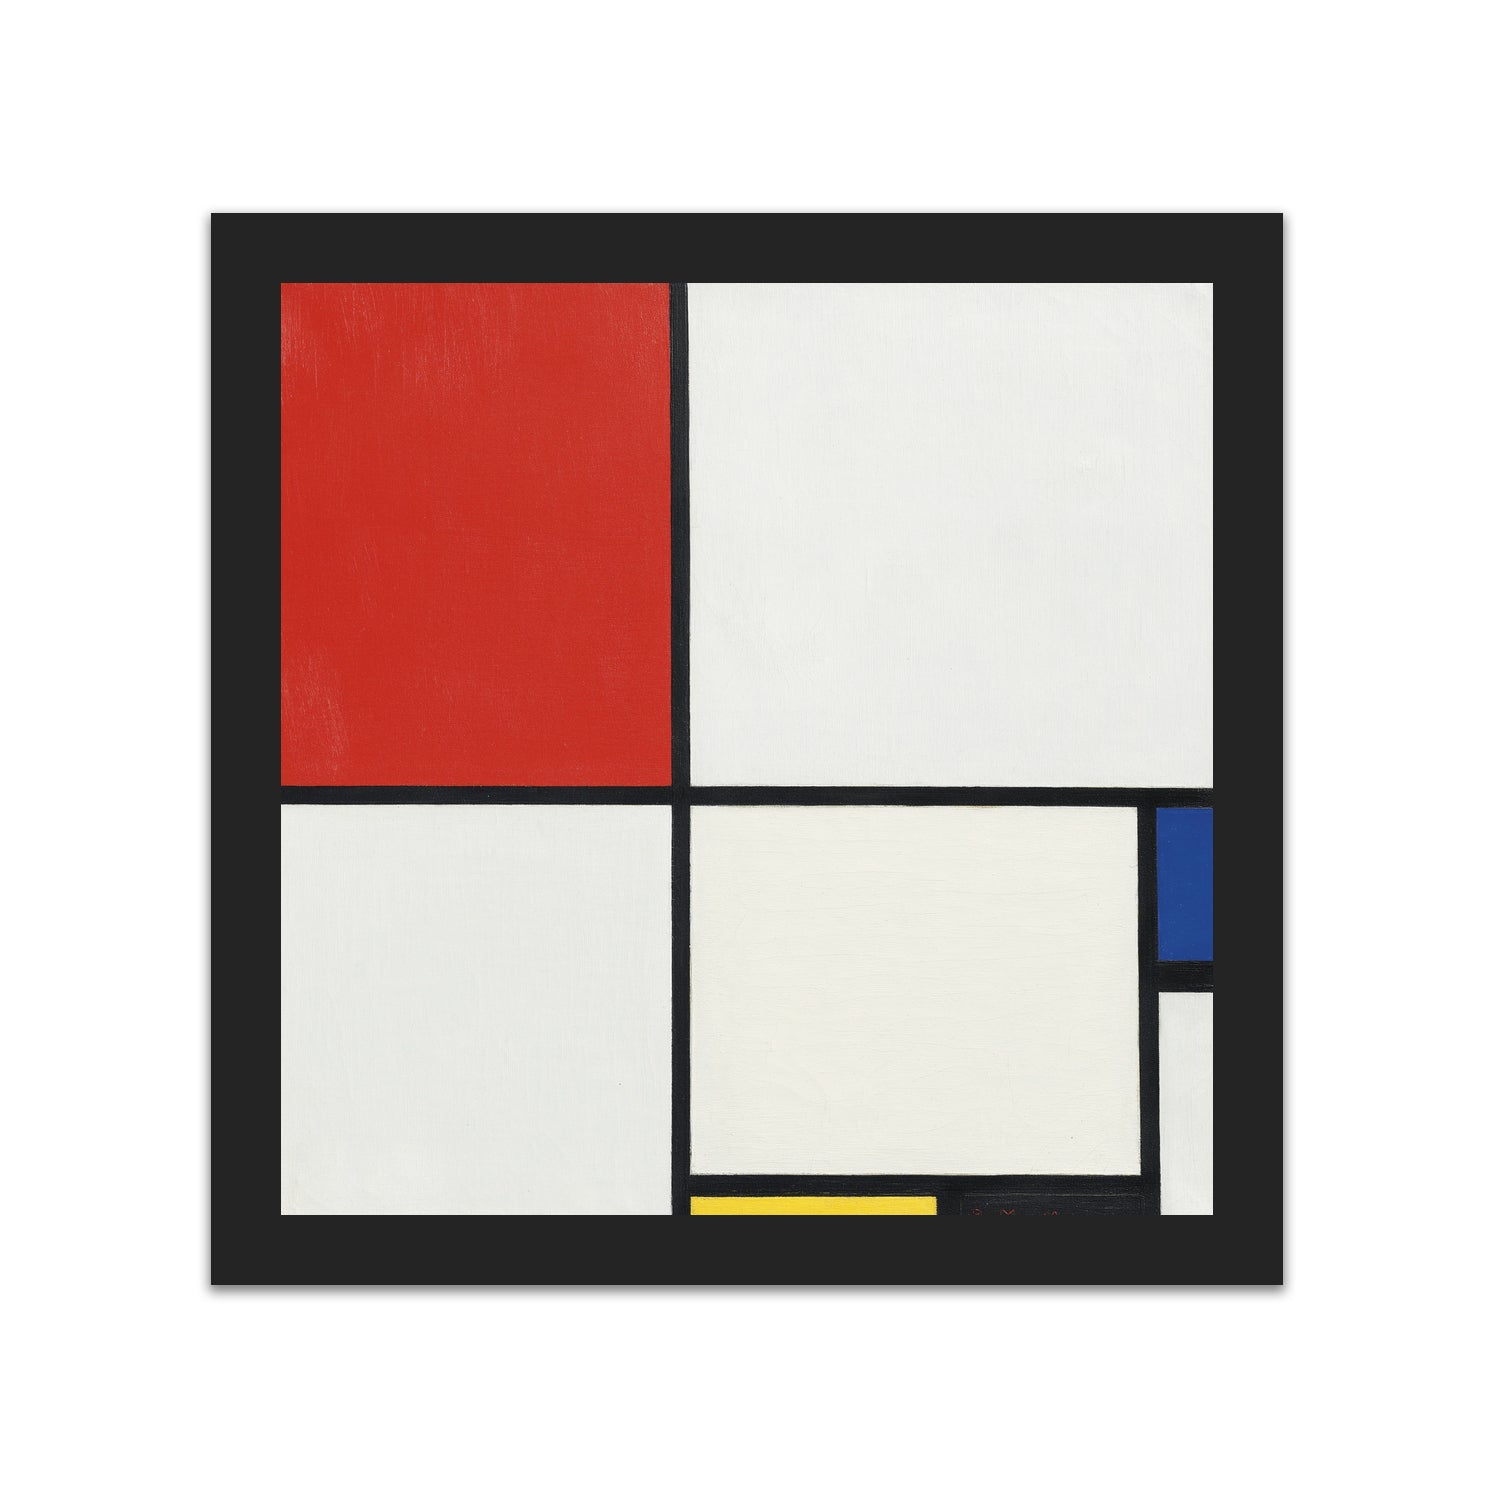 Composition No. III, with Red, Blue, Yellow, and Black